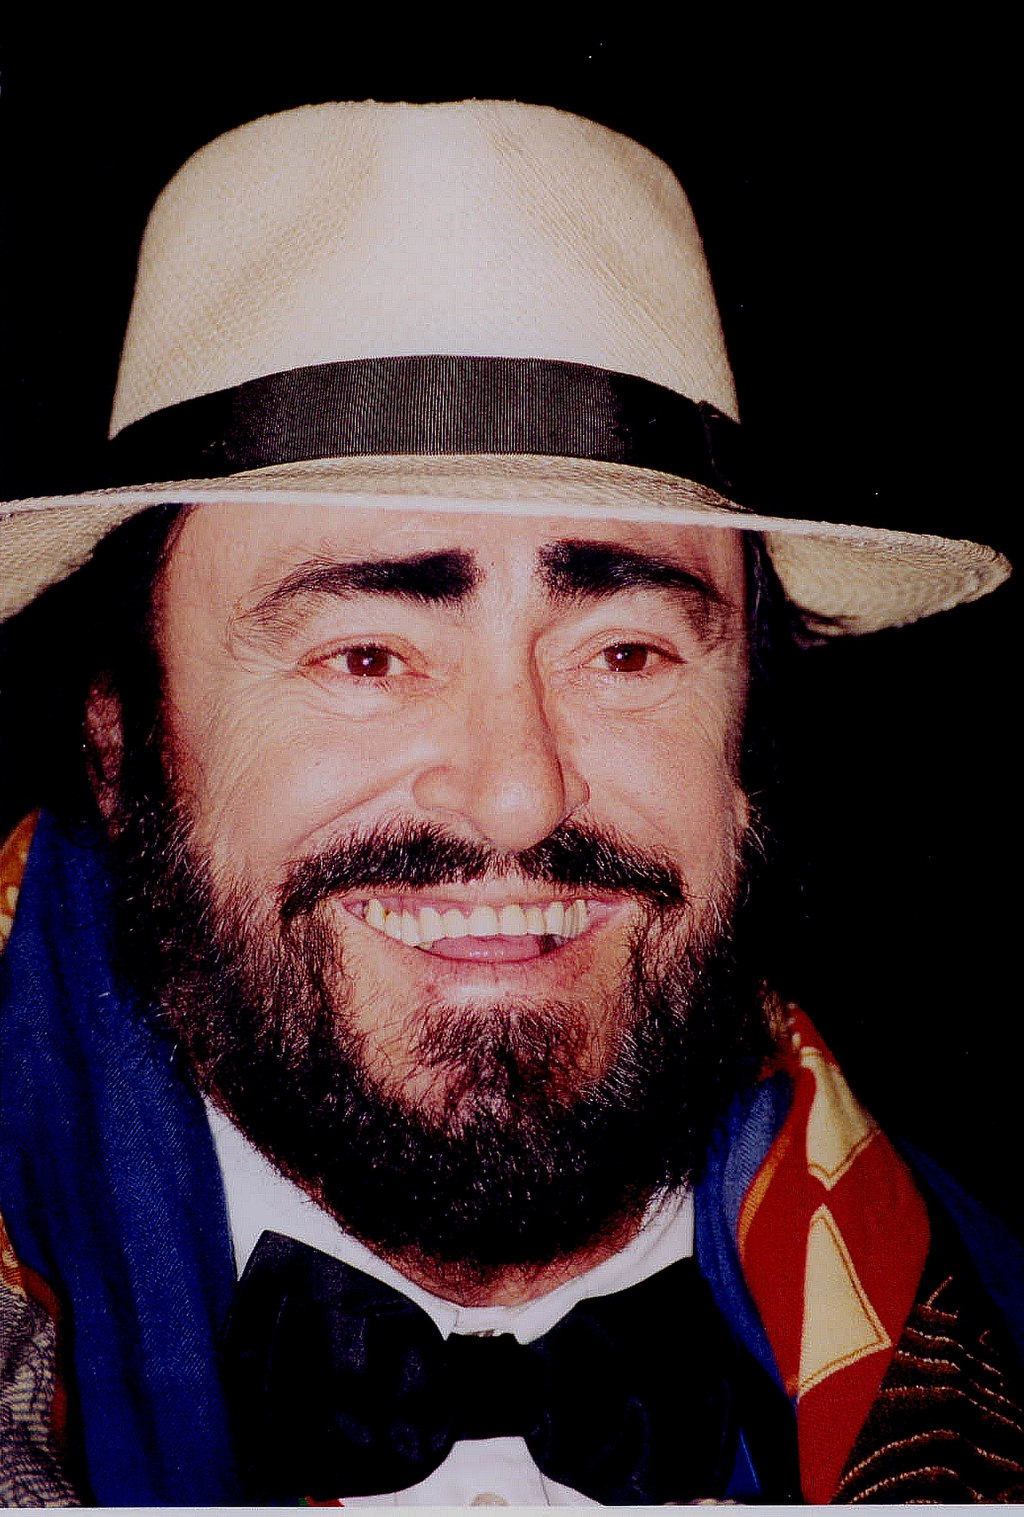 Luciano Pavarotti, Italian Music from the Ears to the Soul - The Proud Italian